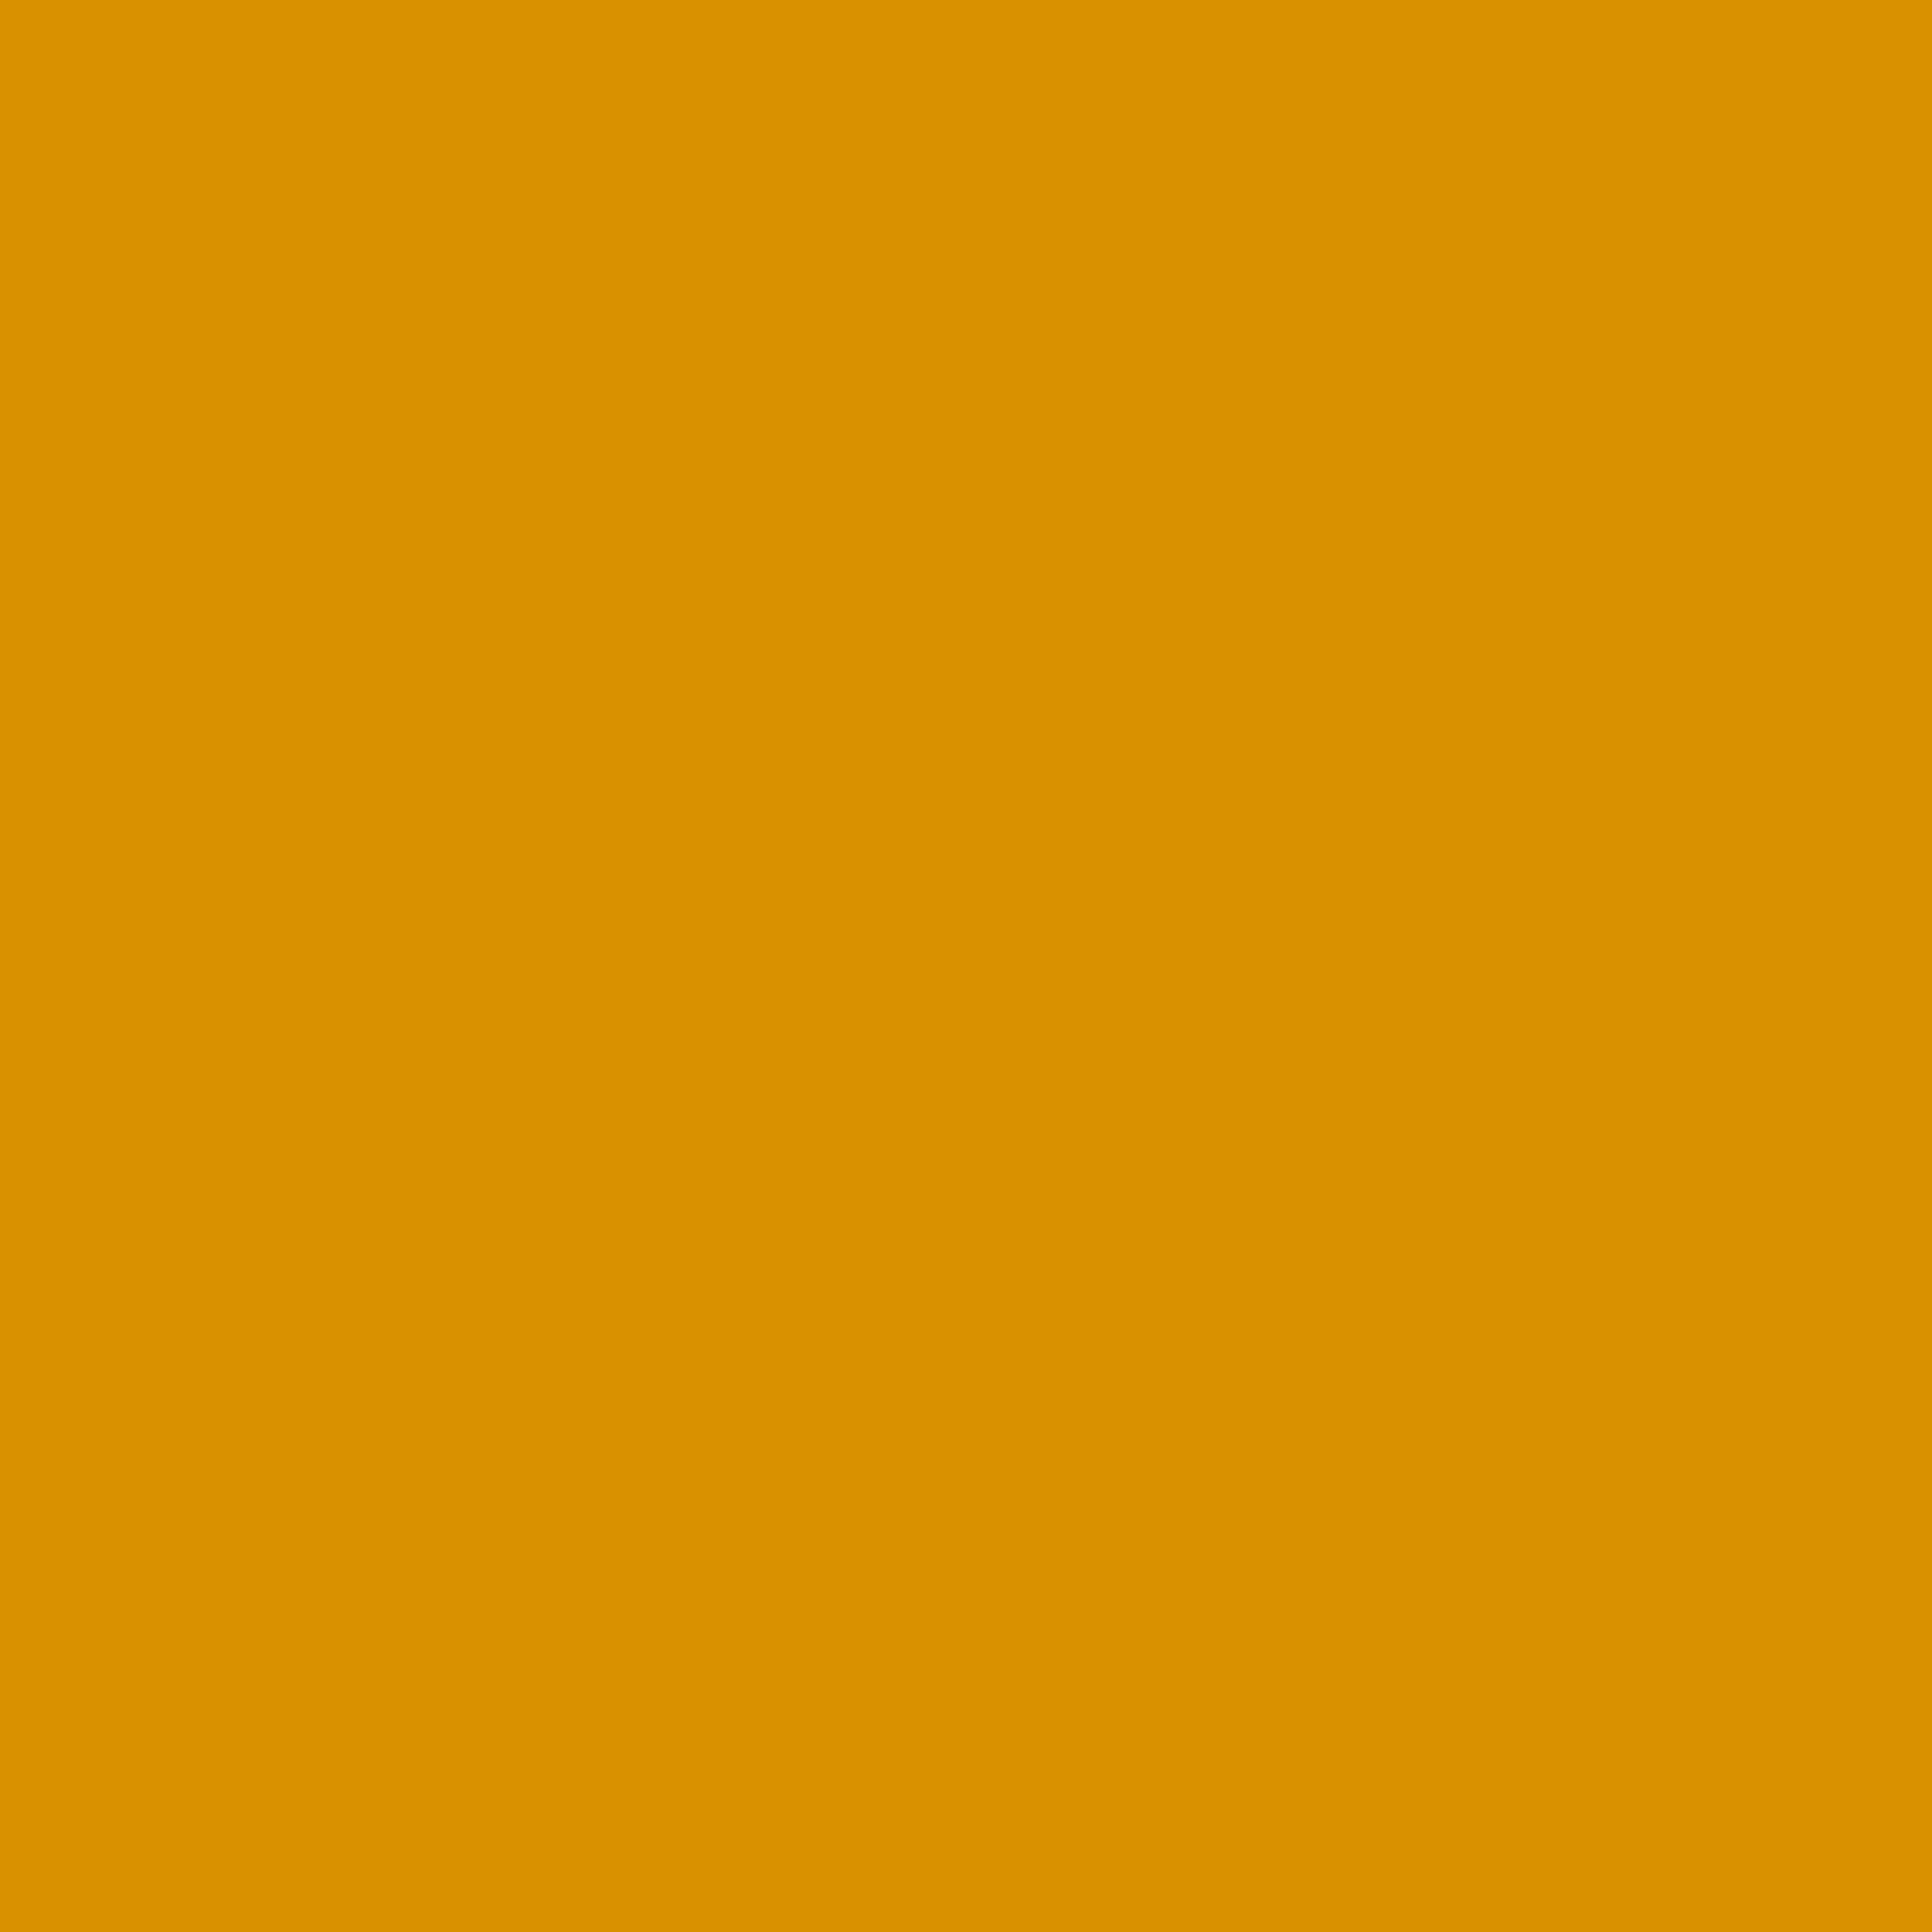 3600x3600 Harvest Gold Solid Color Background